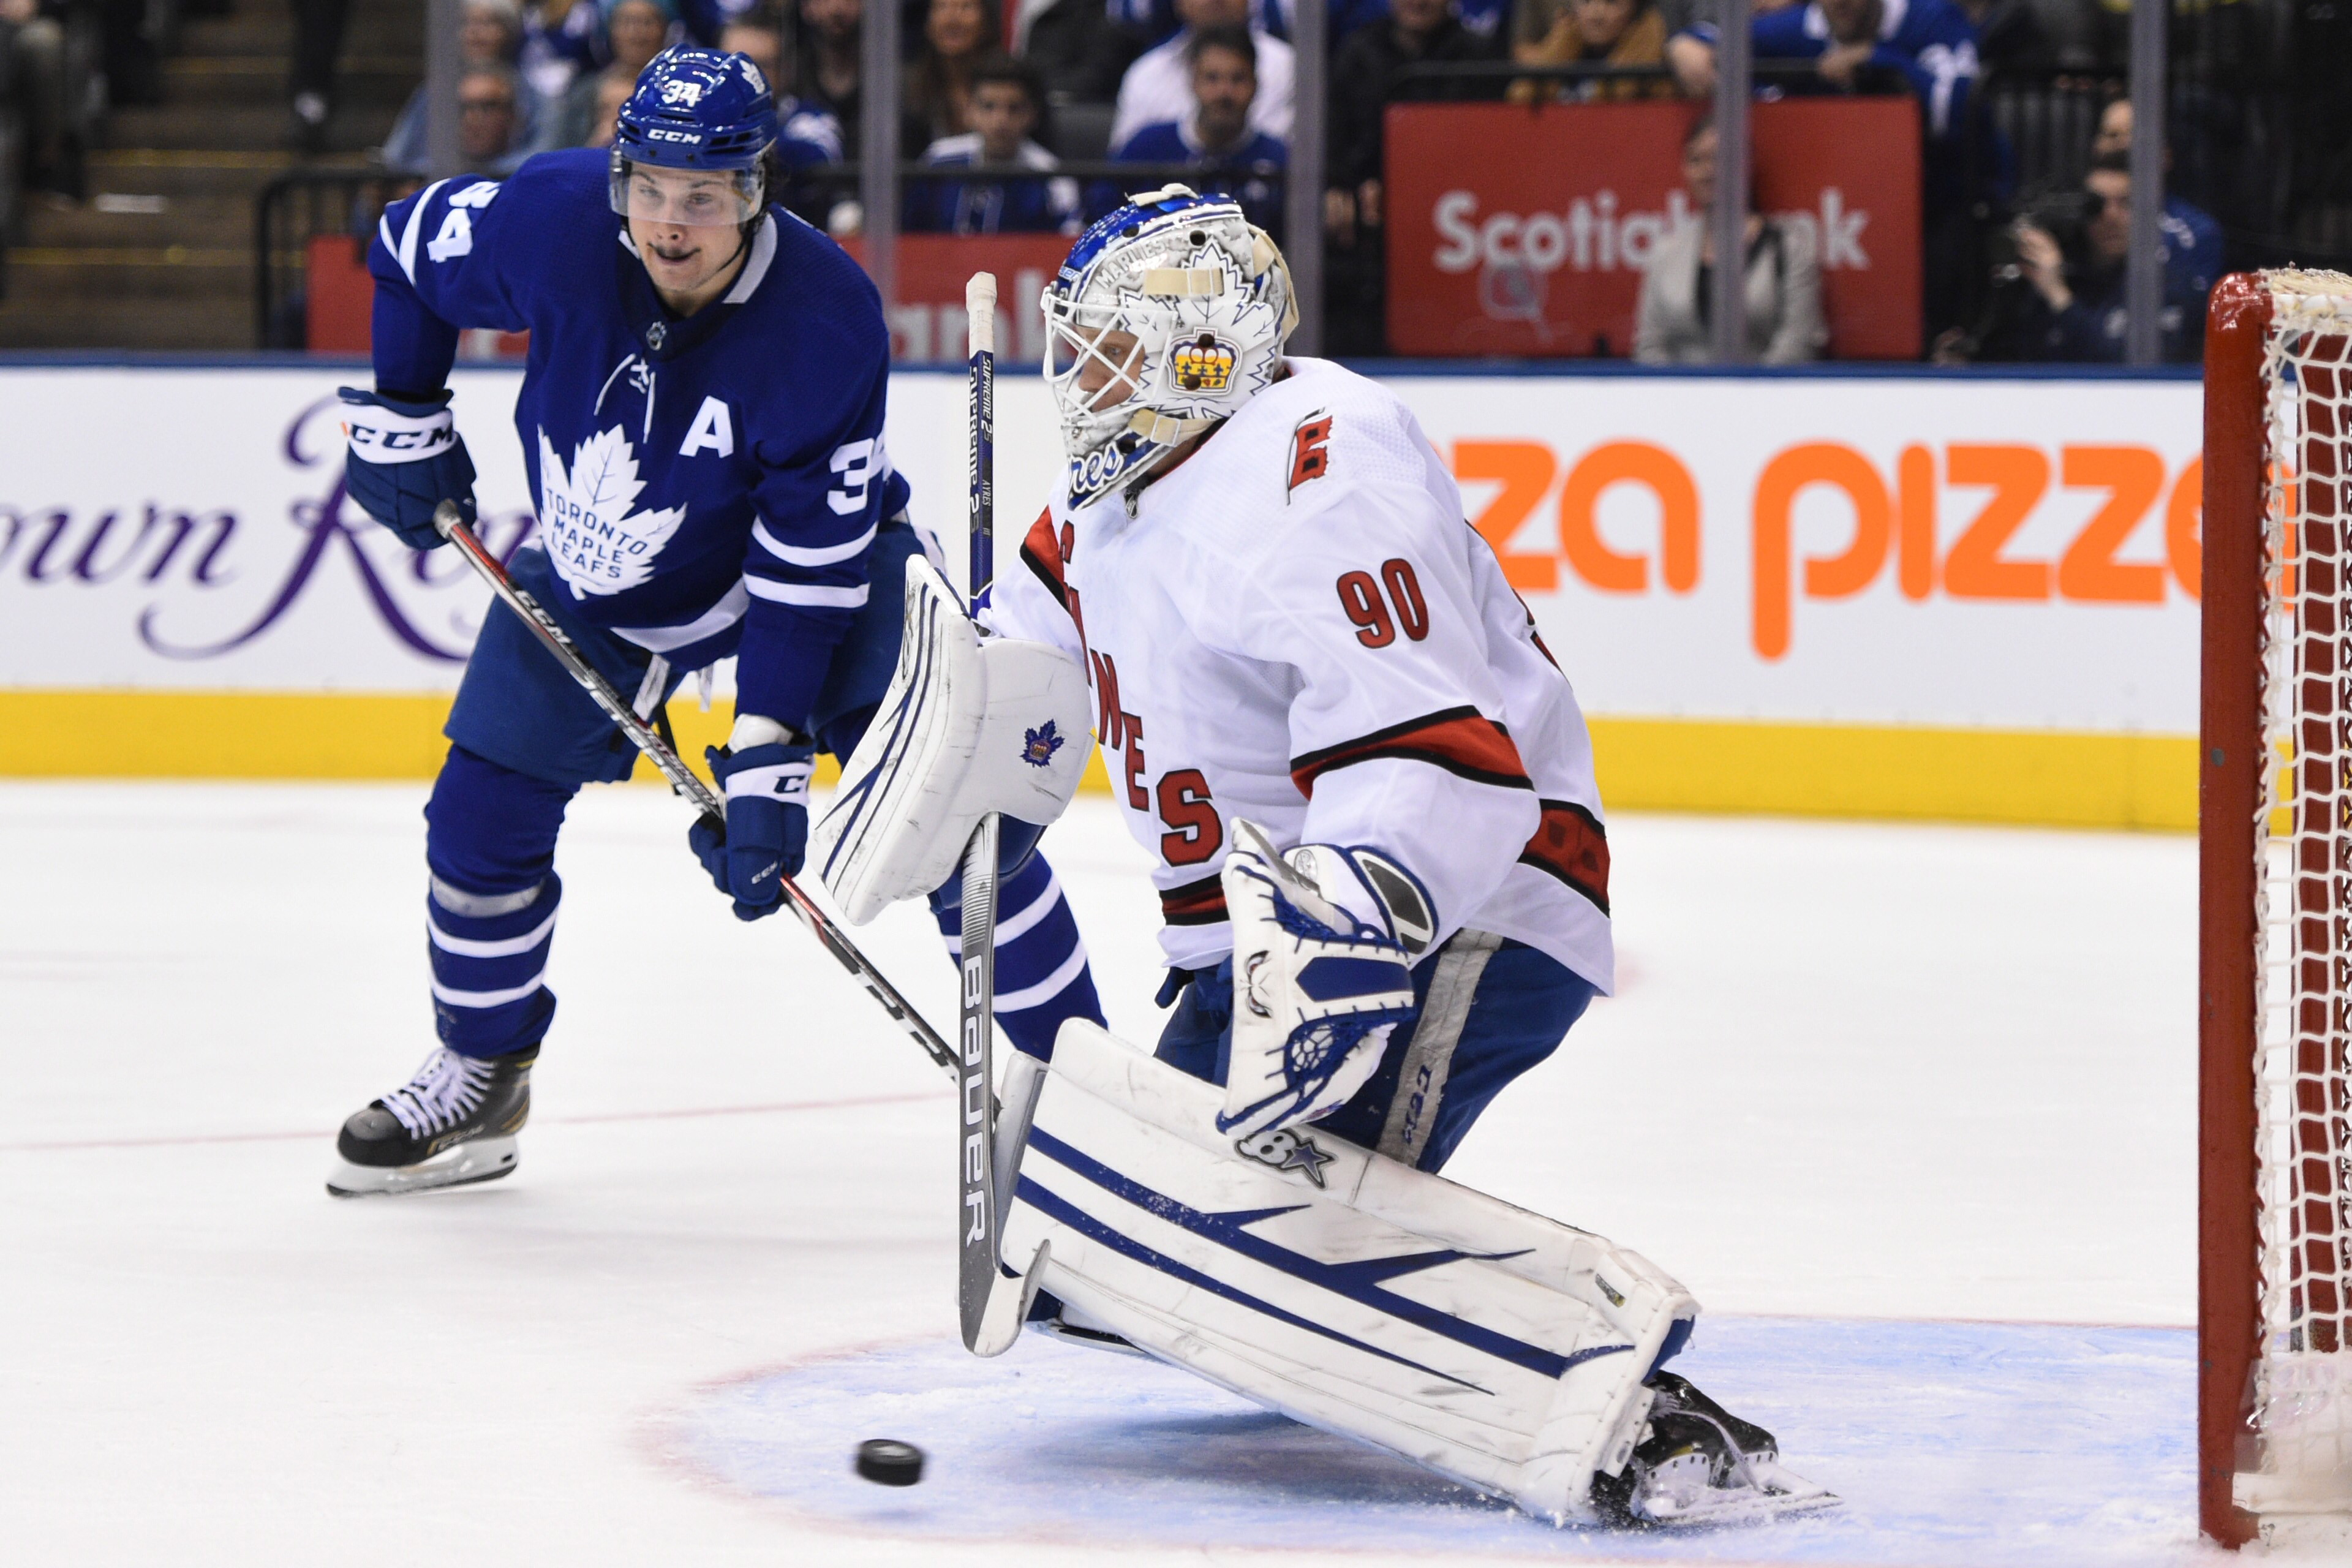 Zamboni Driver Part Time Goalie Dave Ayres Leads Carolina To Victory Over Maple Leafs Citynews Toronto